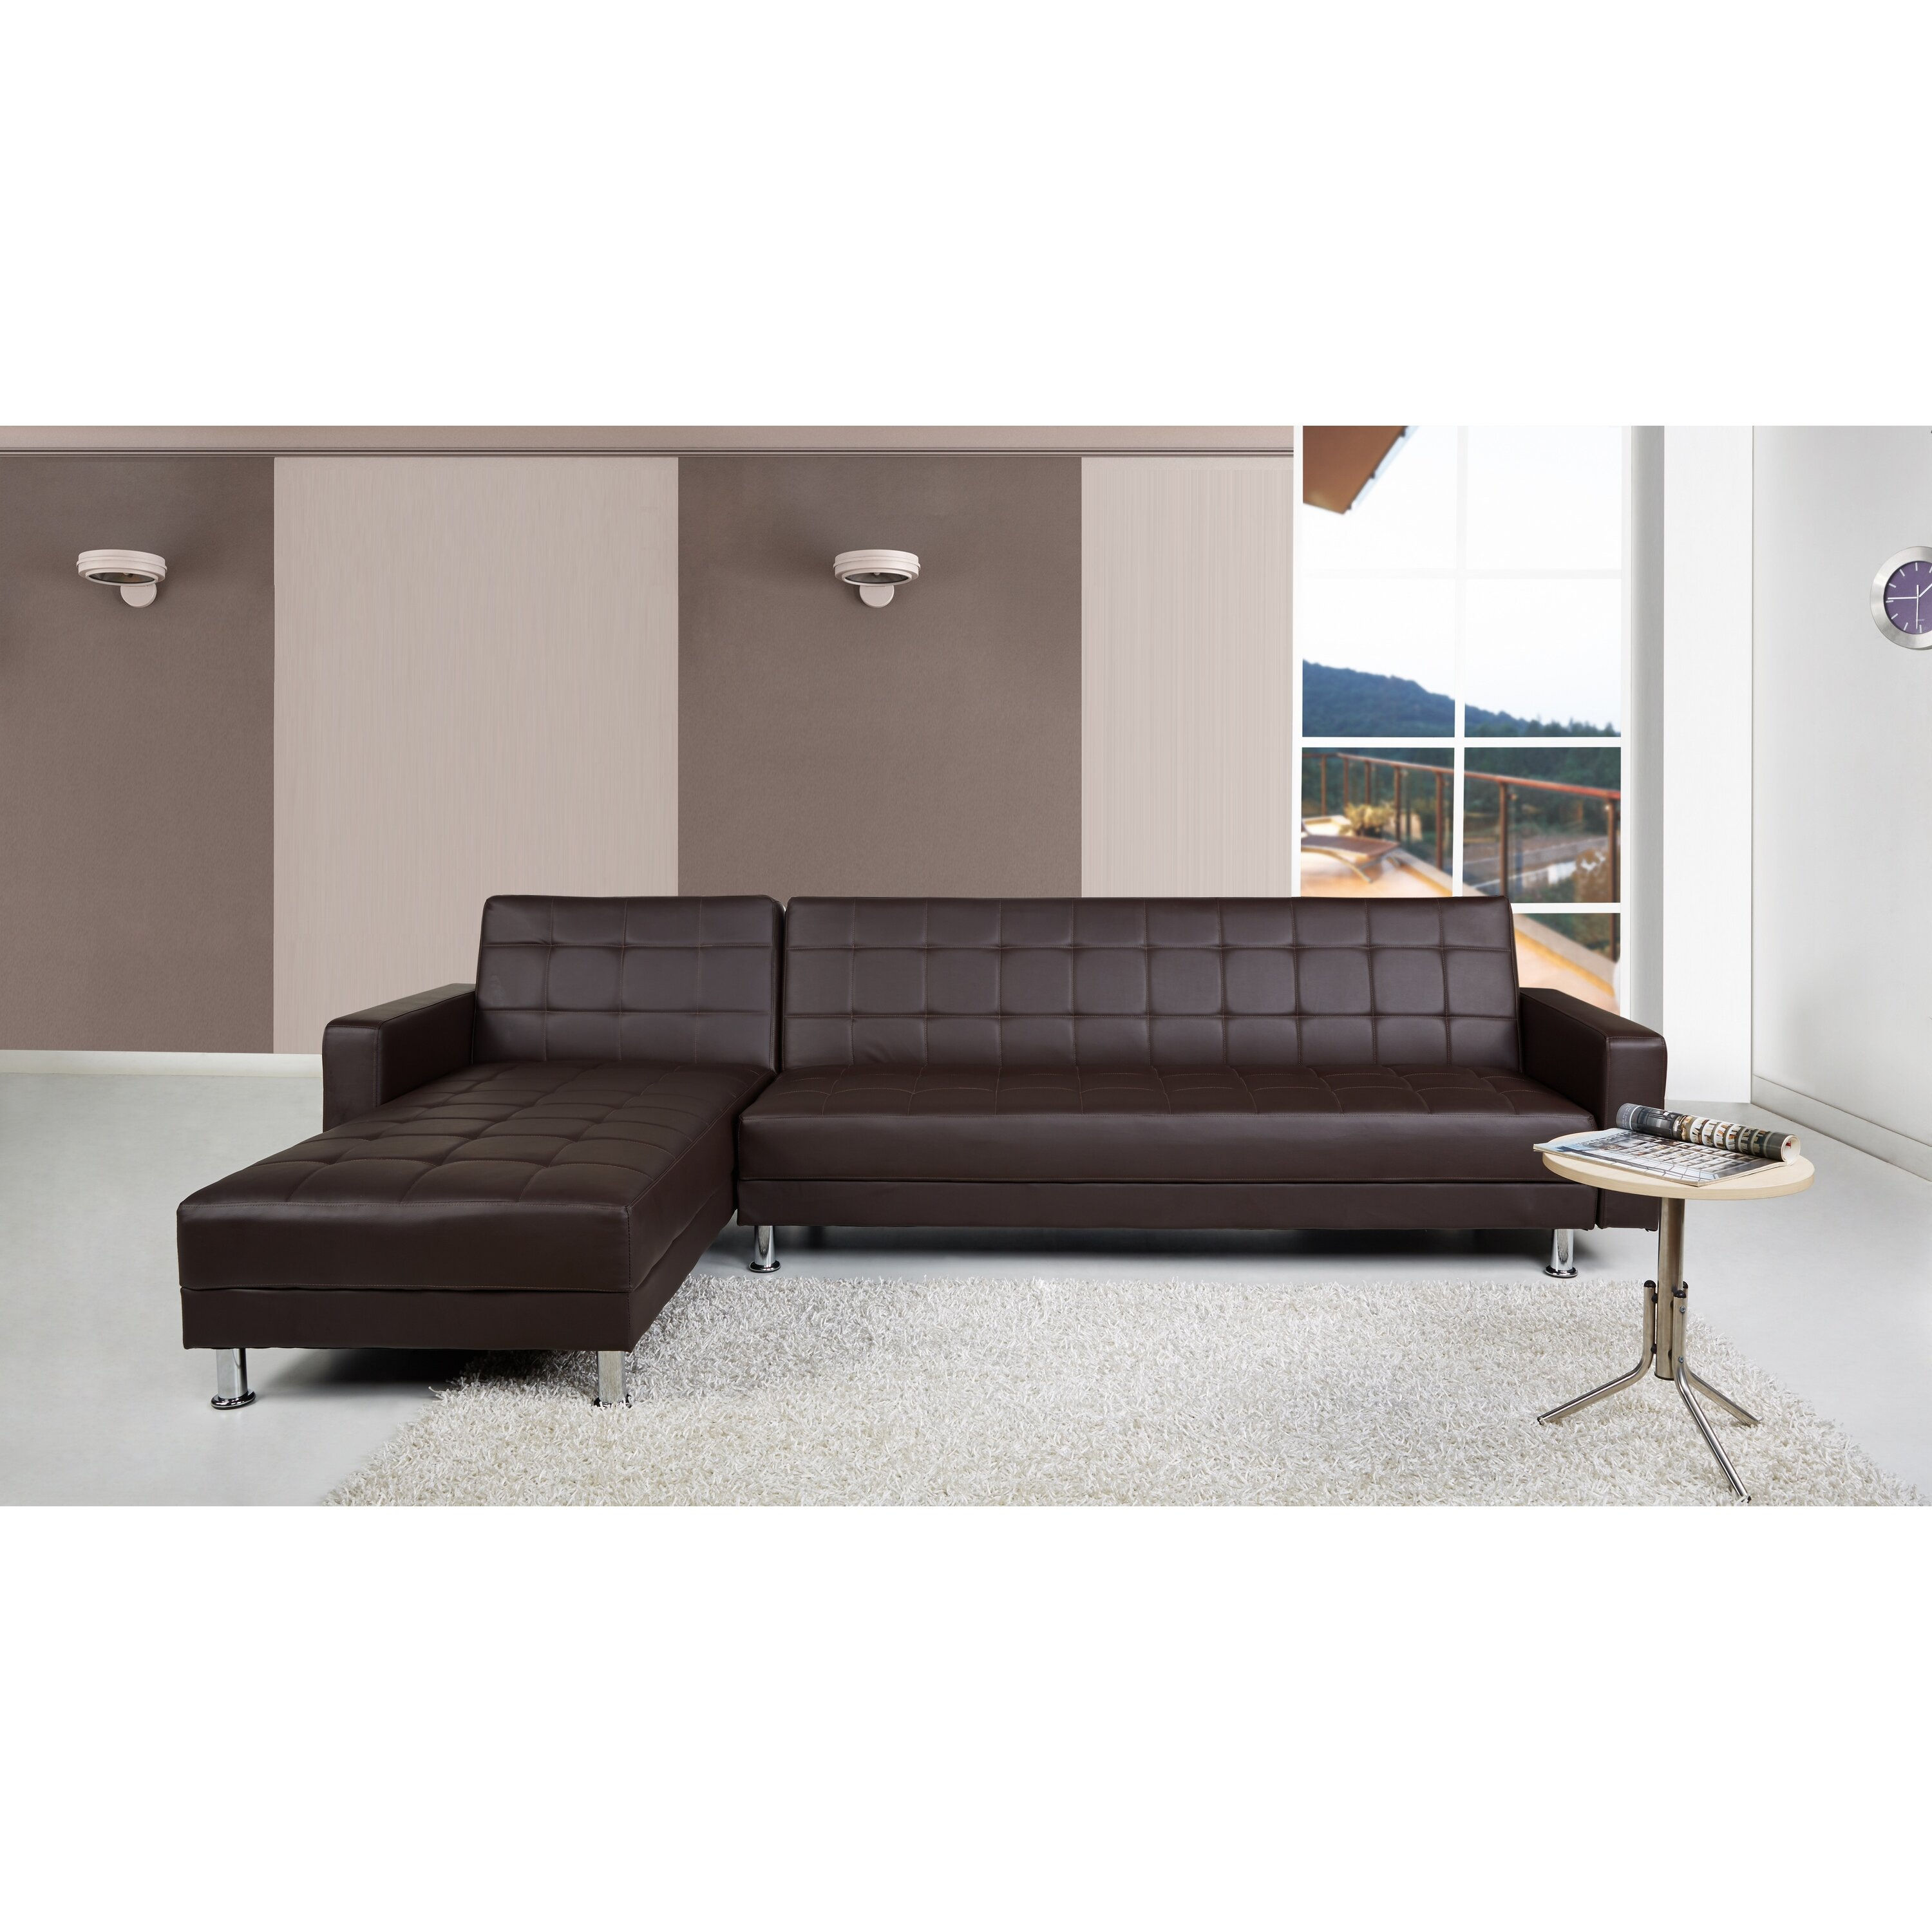 Leader Lifestyle Spencer Modular Corner Sofa Bed & Reviews